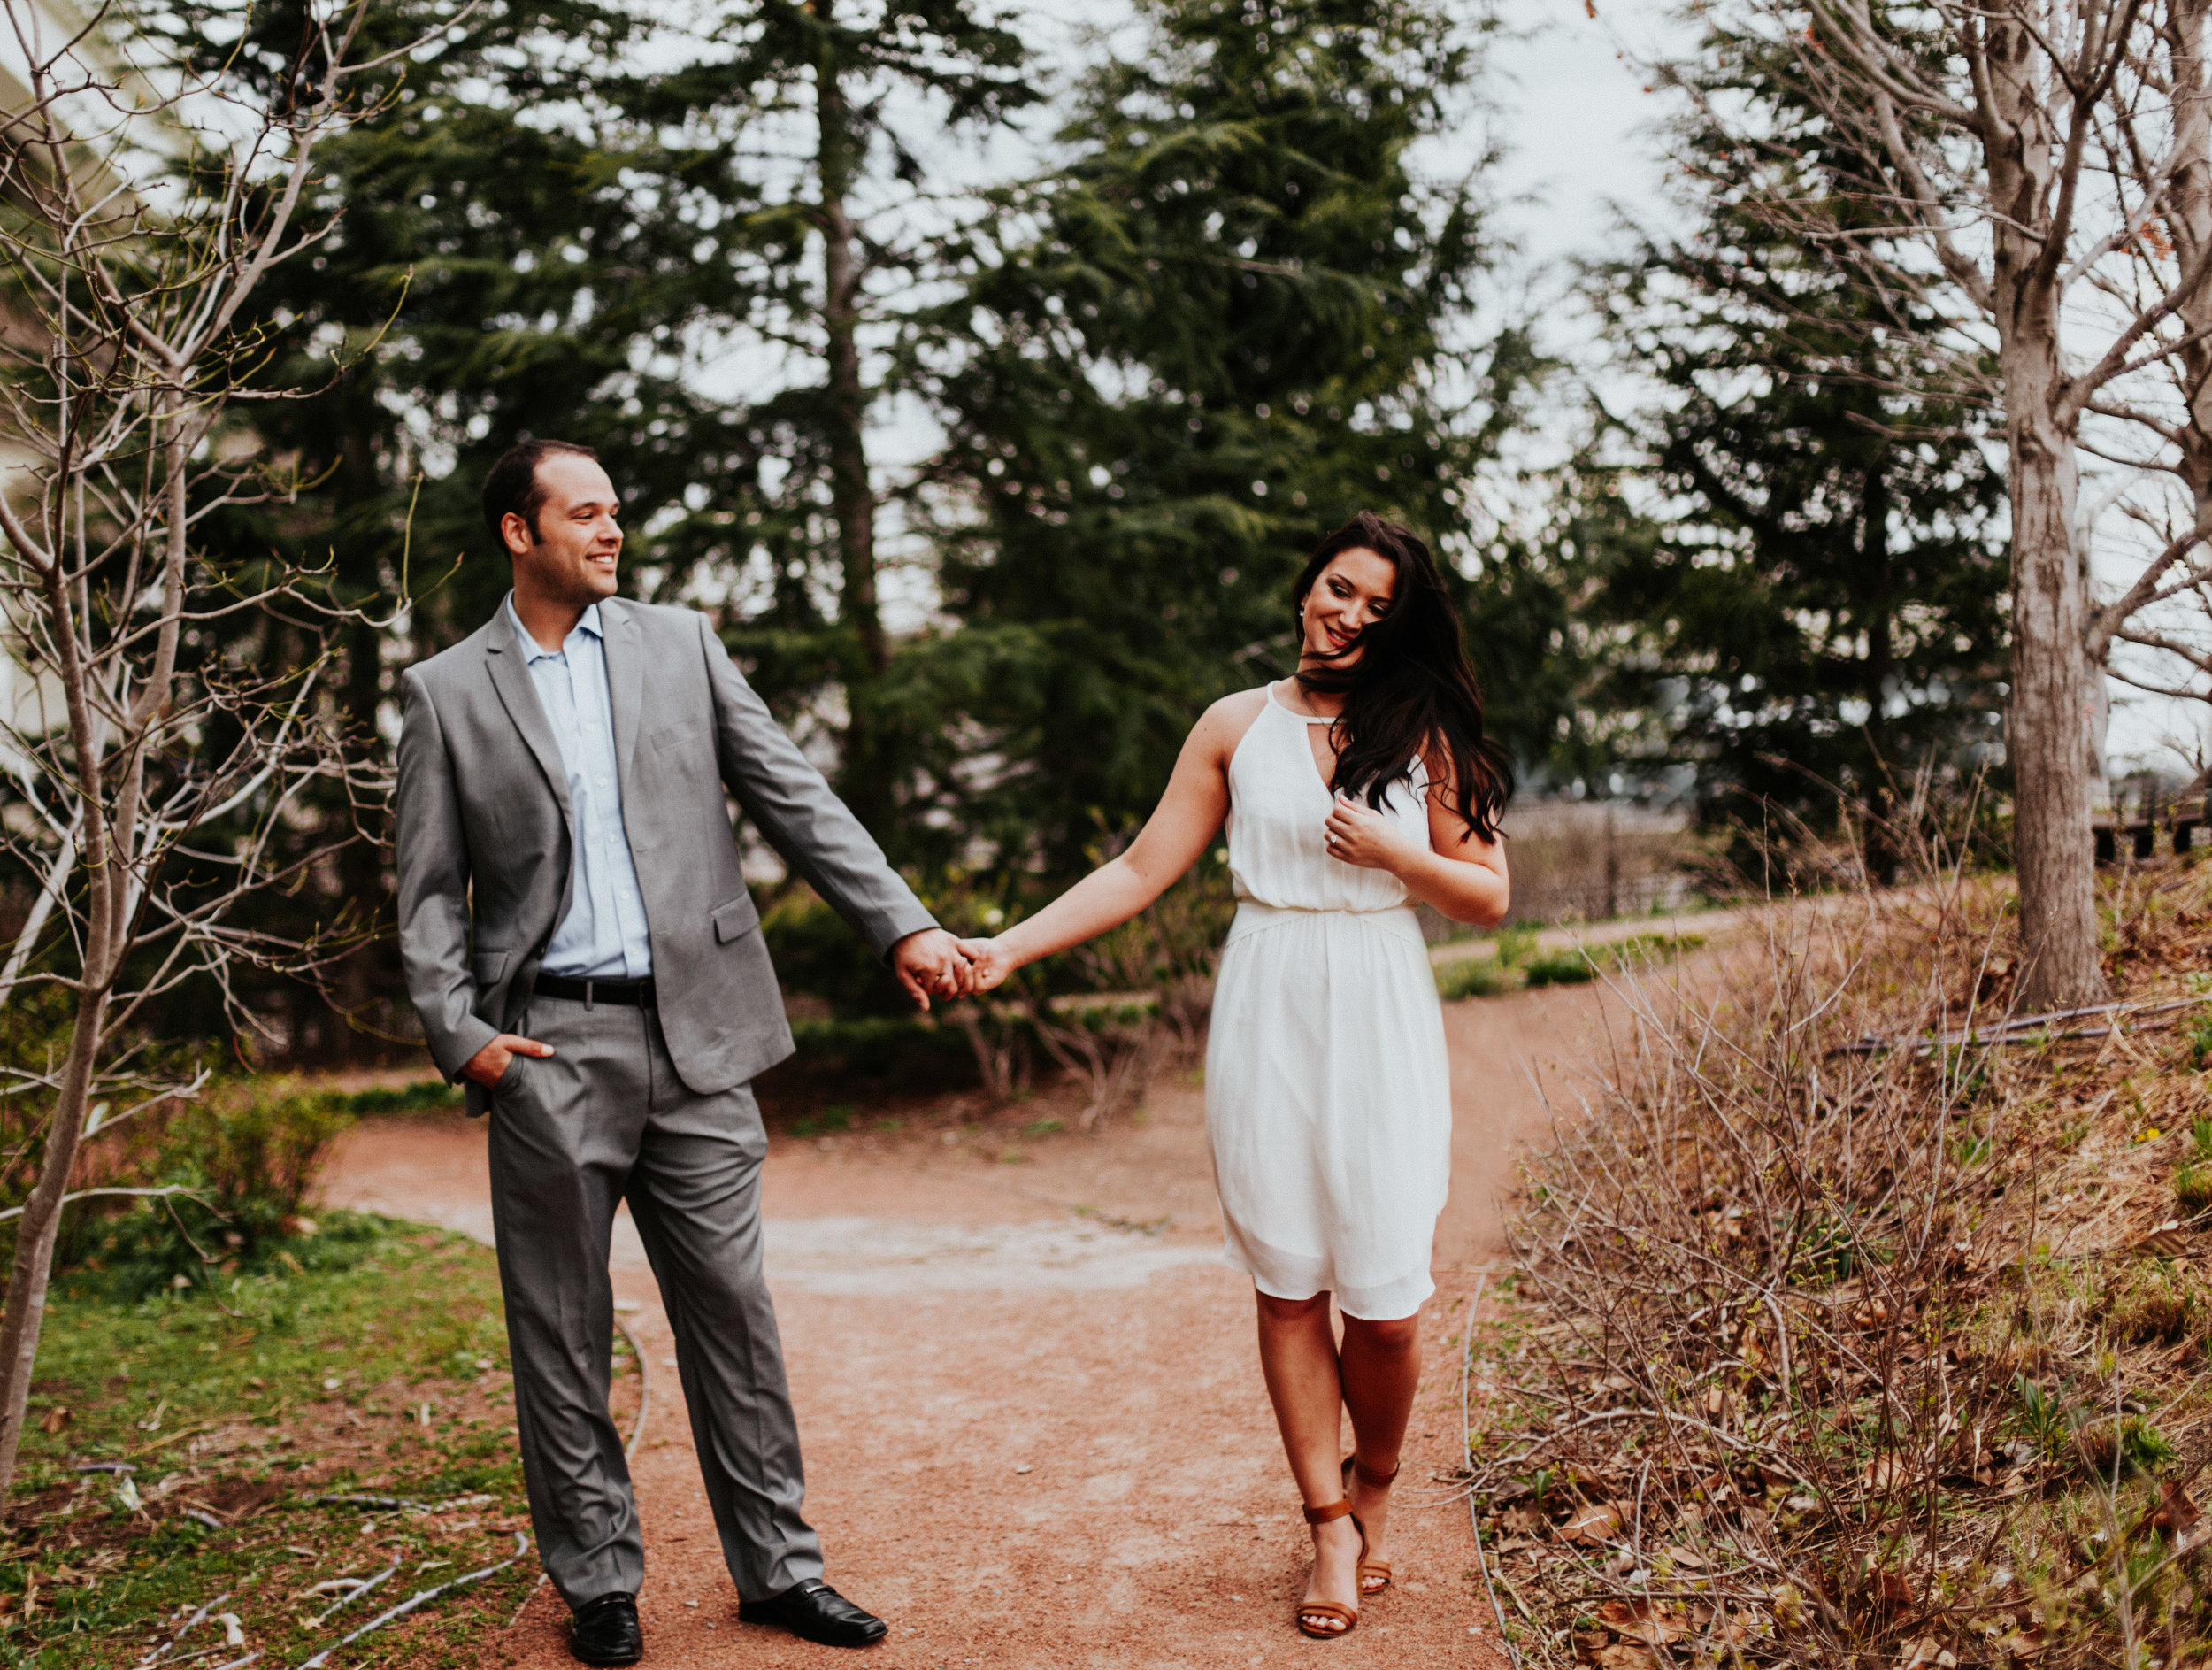 best elopement travel destination photographer and engagement photographer based in nashville emily anne photography cumberland park